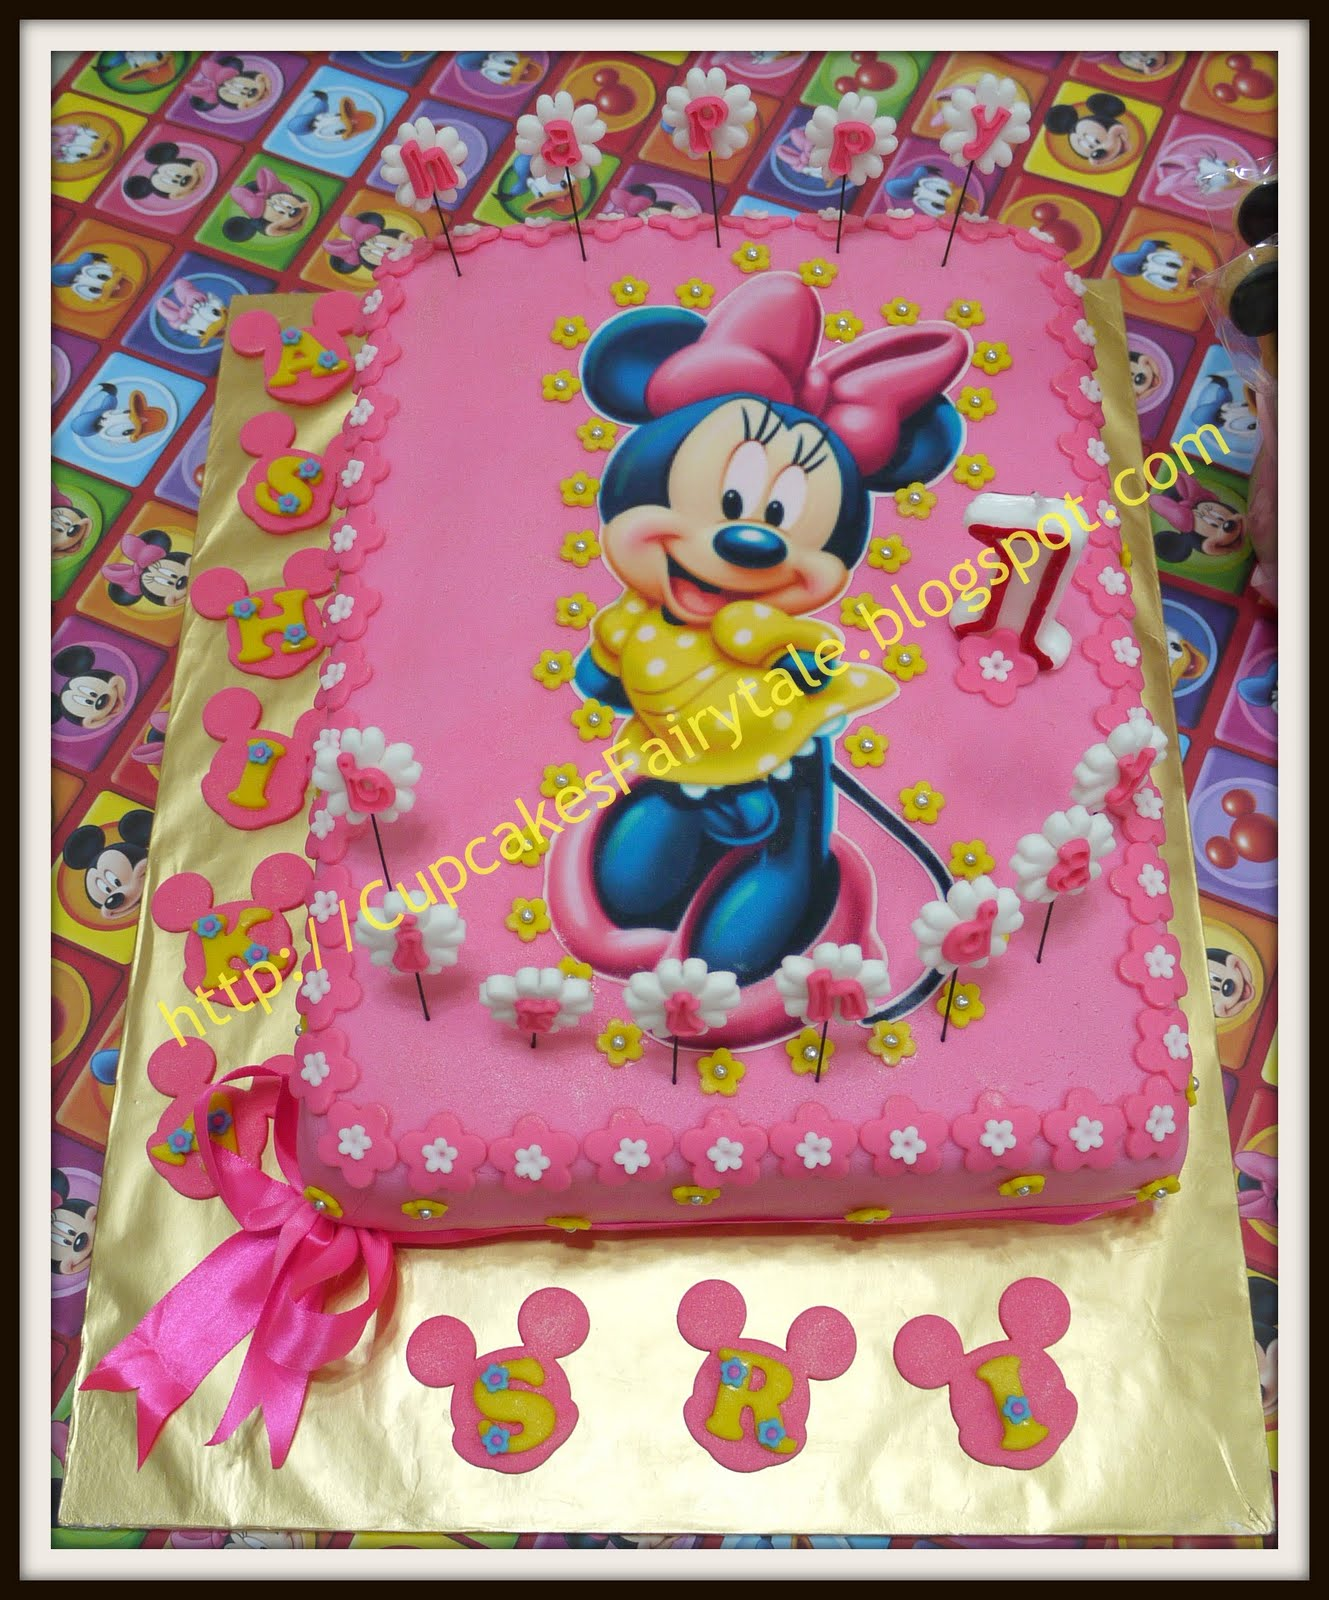 2 Year Old Baby Girl Birthday Cakes Birthday Cakes For Girl